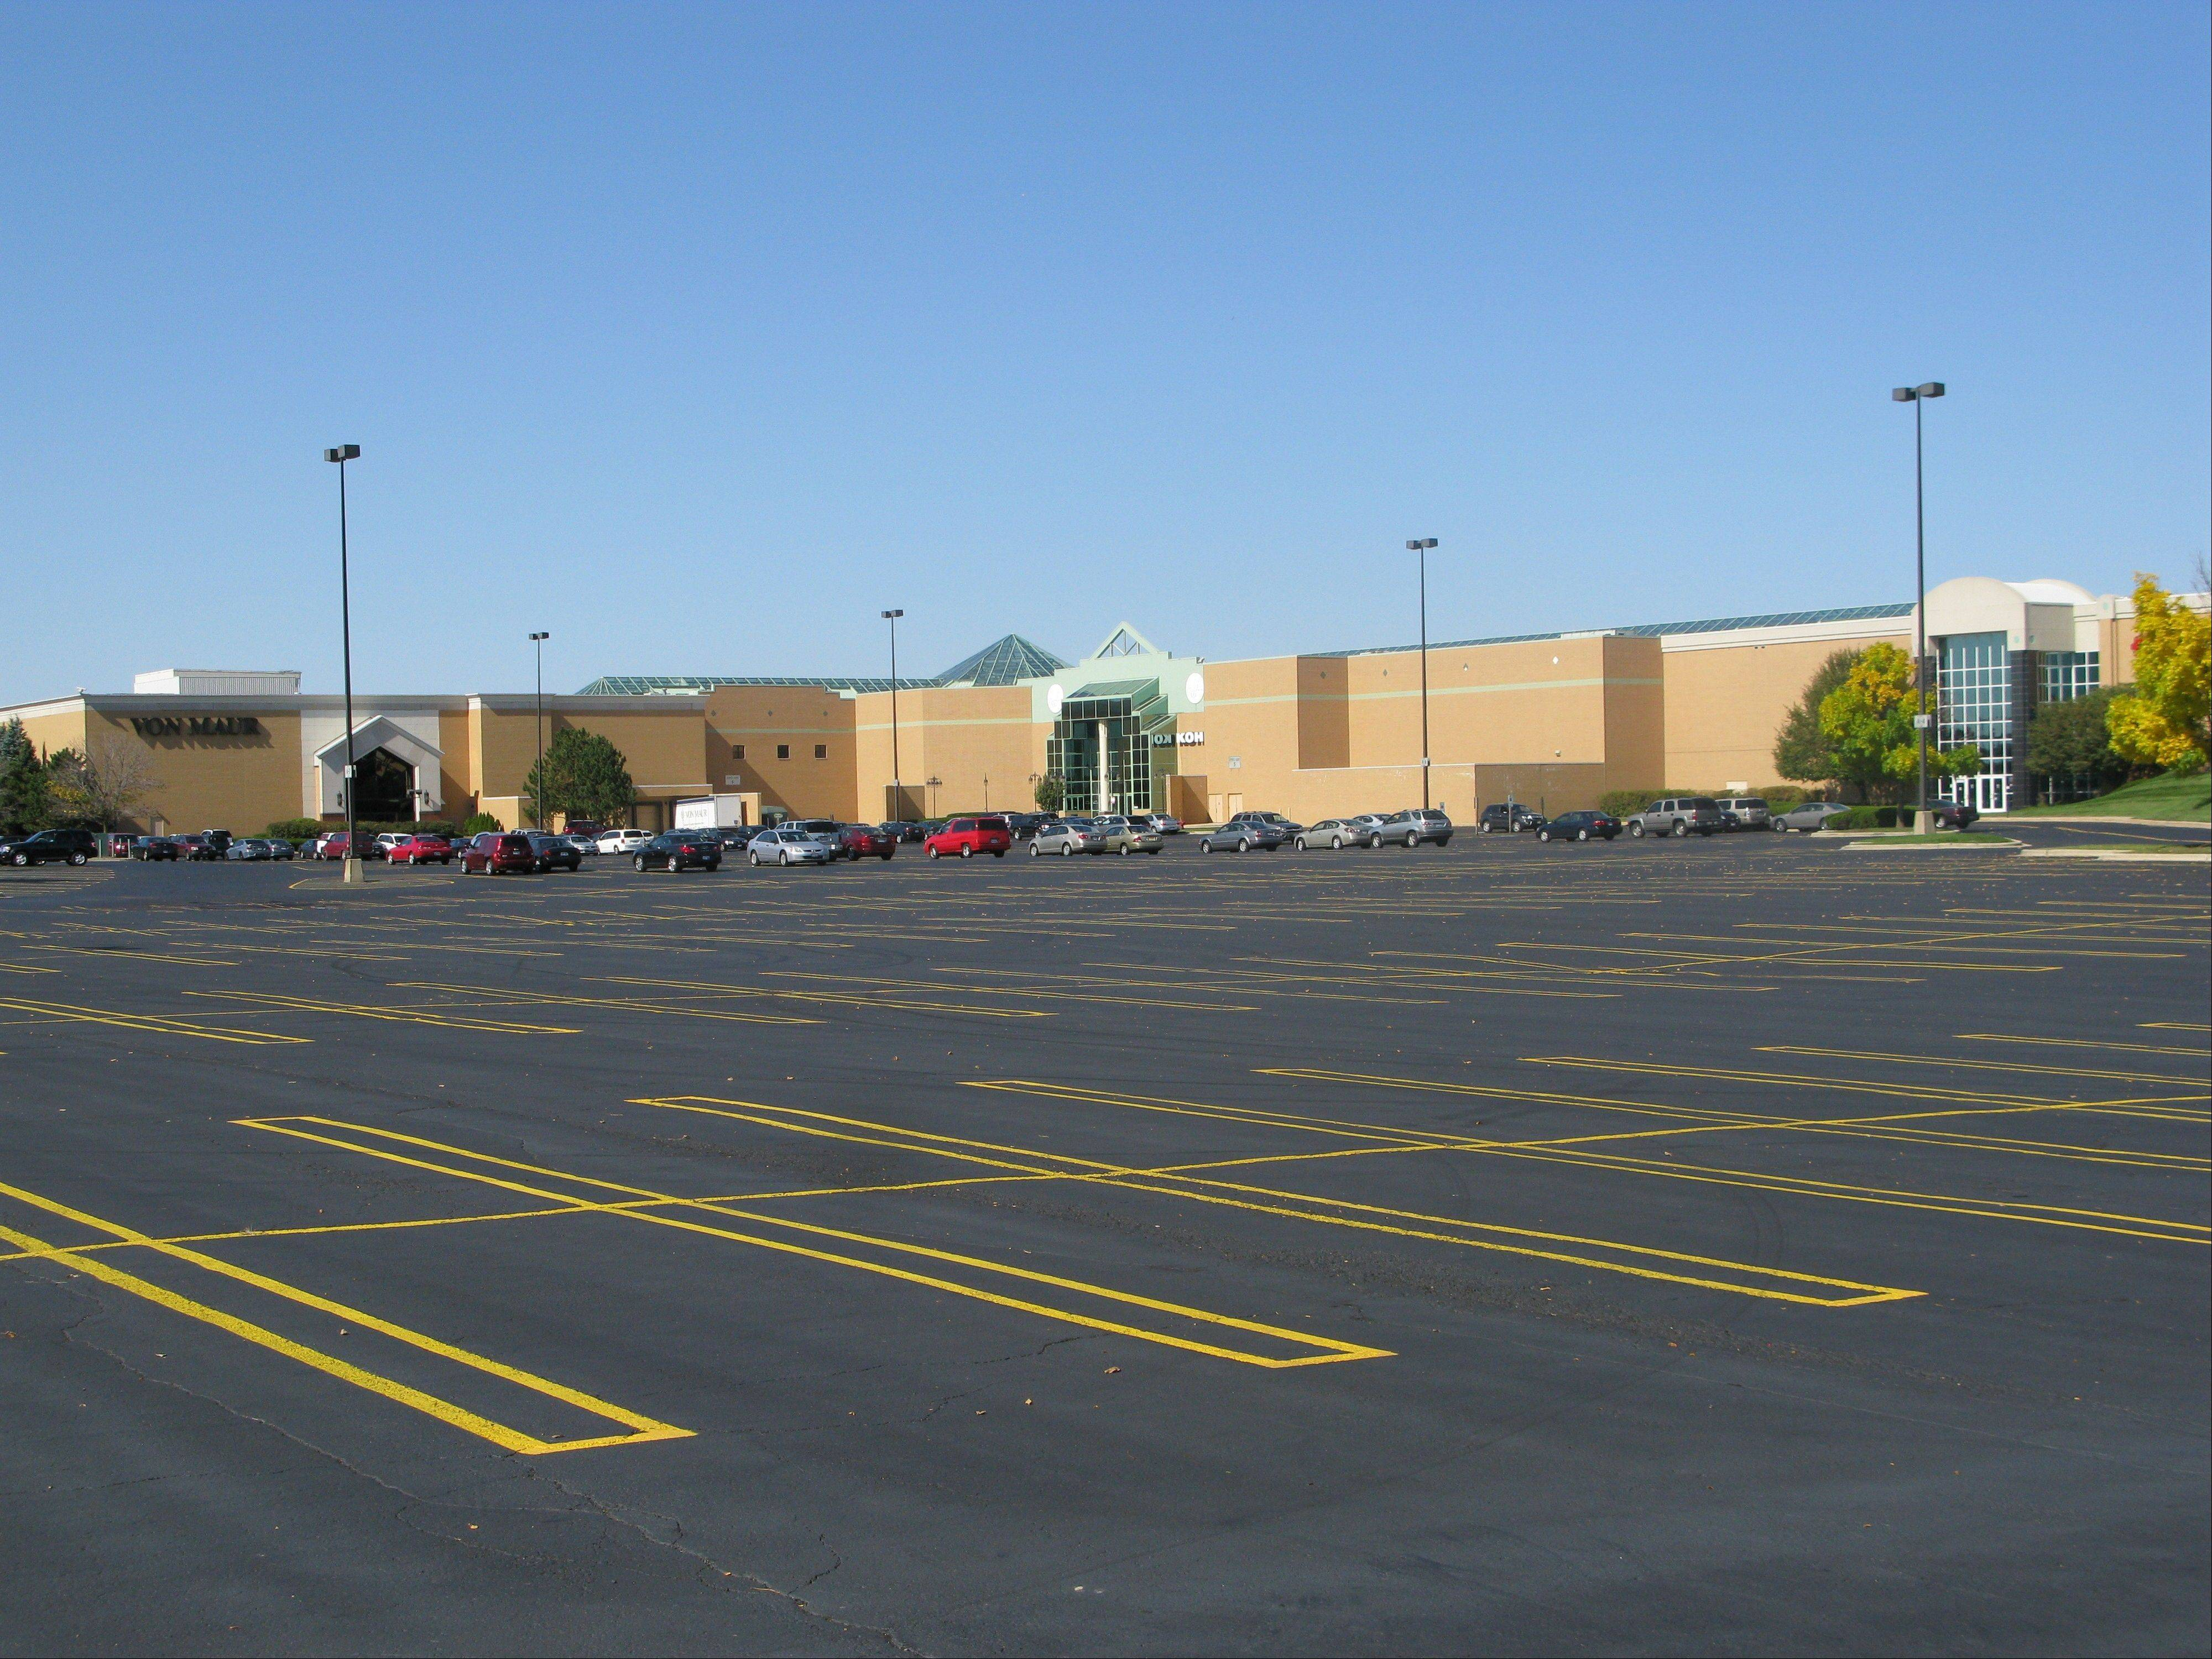 The most notable improvement at Charlestowne Mall in recent years has been a facelift for the parking lot, but shoppers remained few and far between.